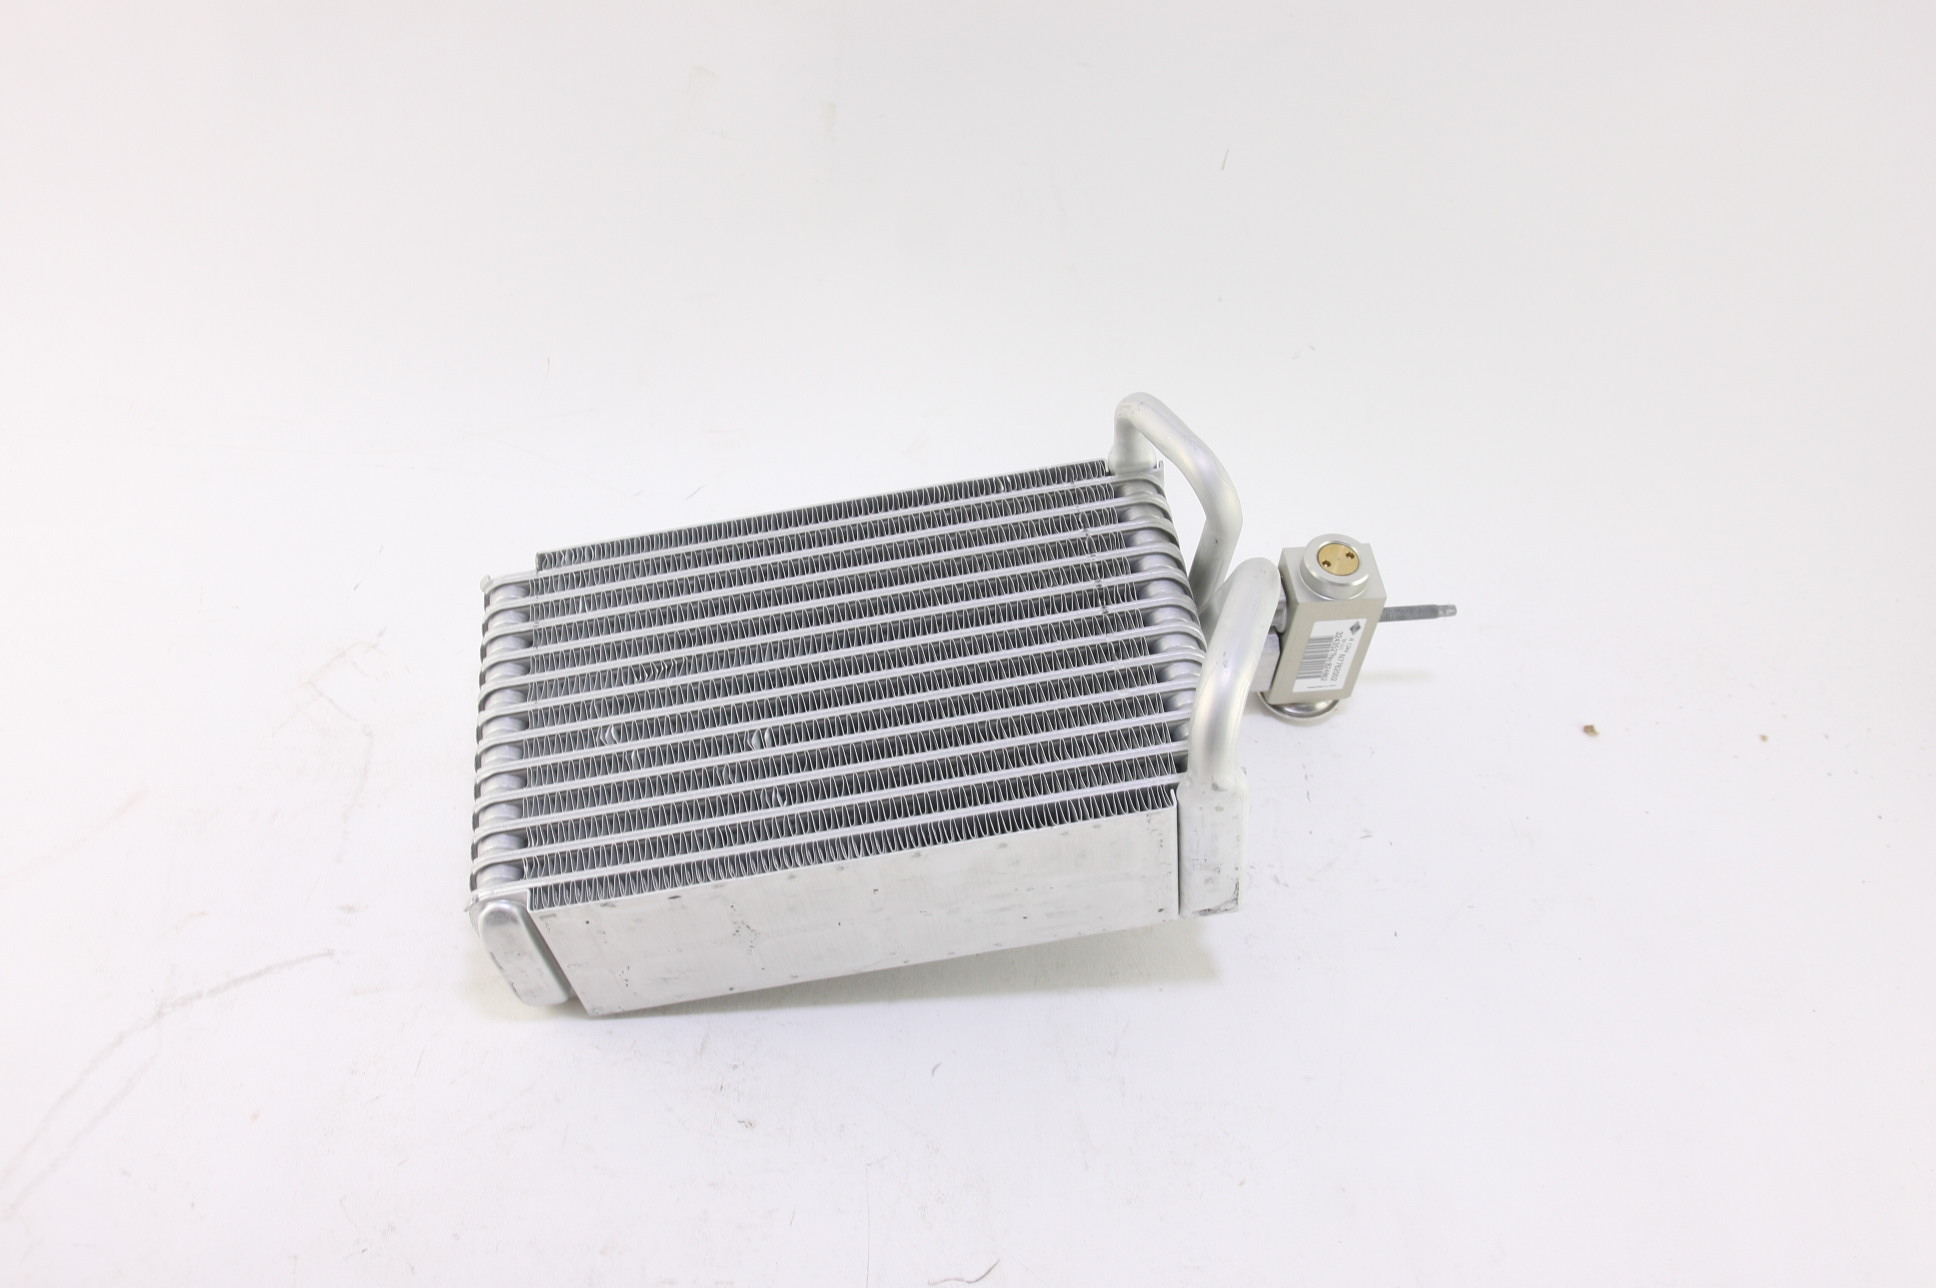 *~ New Mopar OEM CNTKX210AA Evaporator Air Conditioning Caravan Free Shipping - image 6